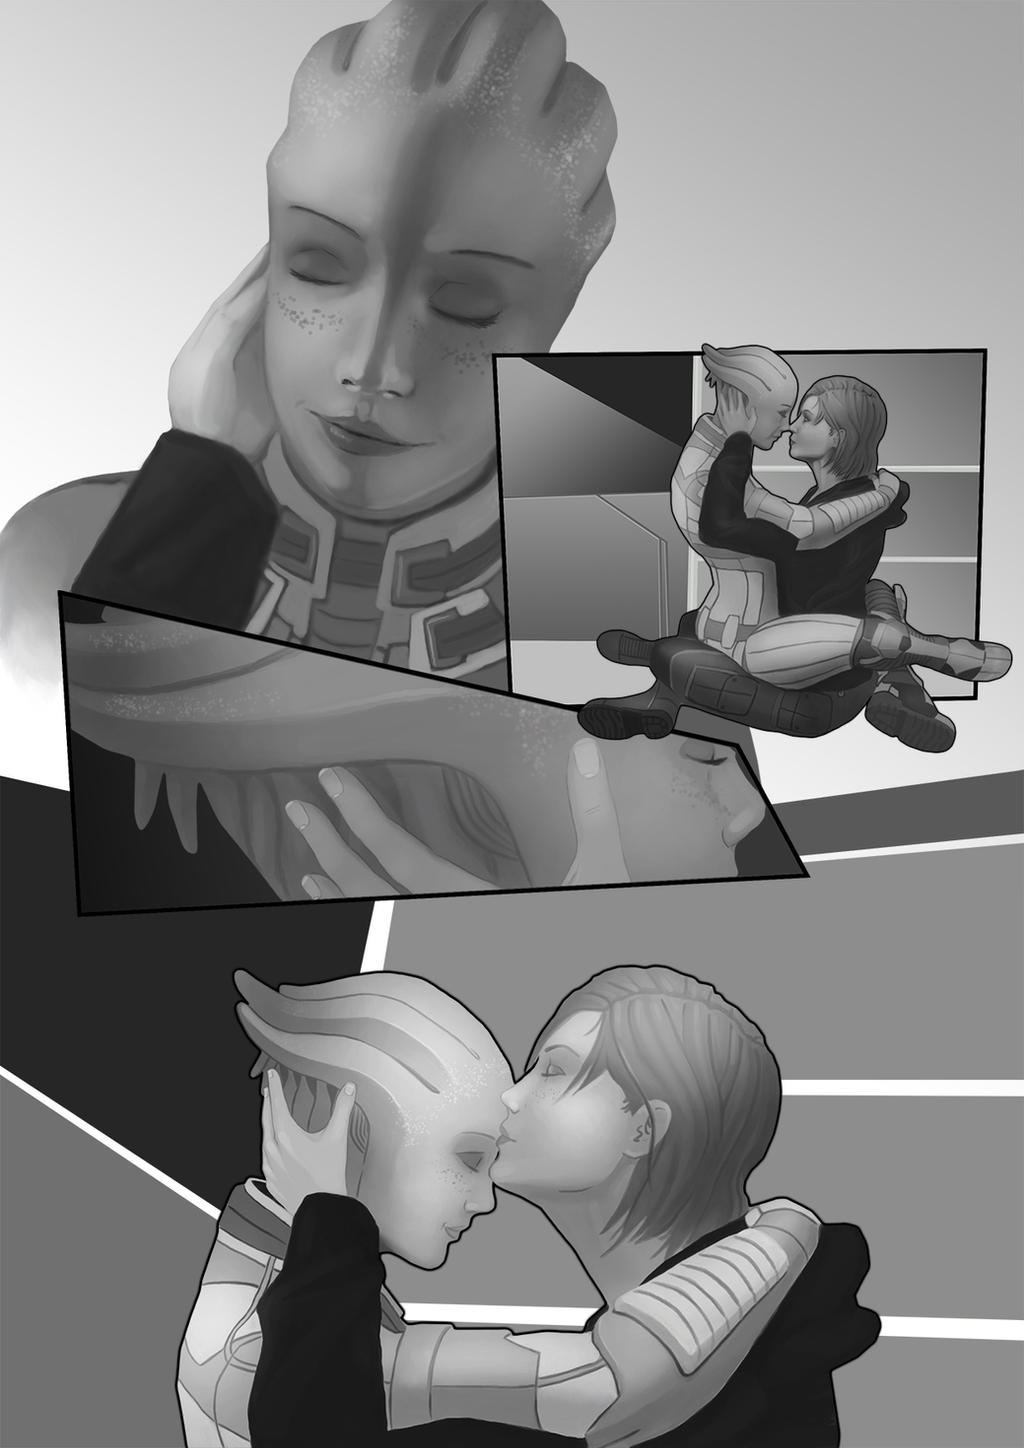 liara_and_shepard_by_calicojill-d5grjjn.jpg